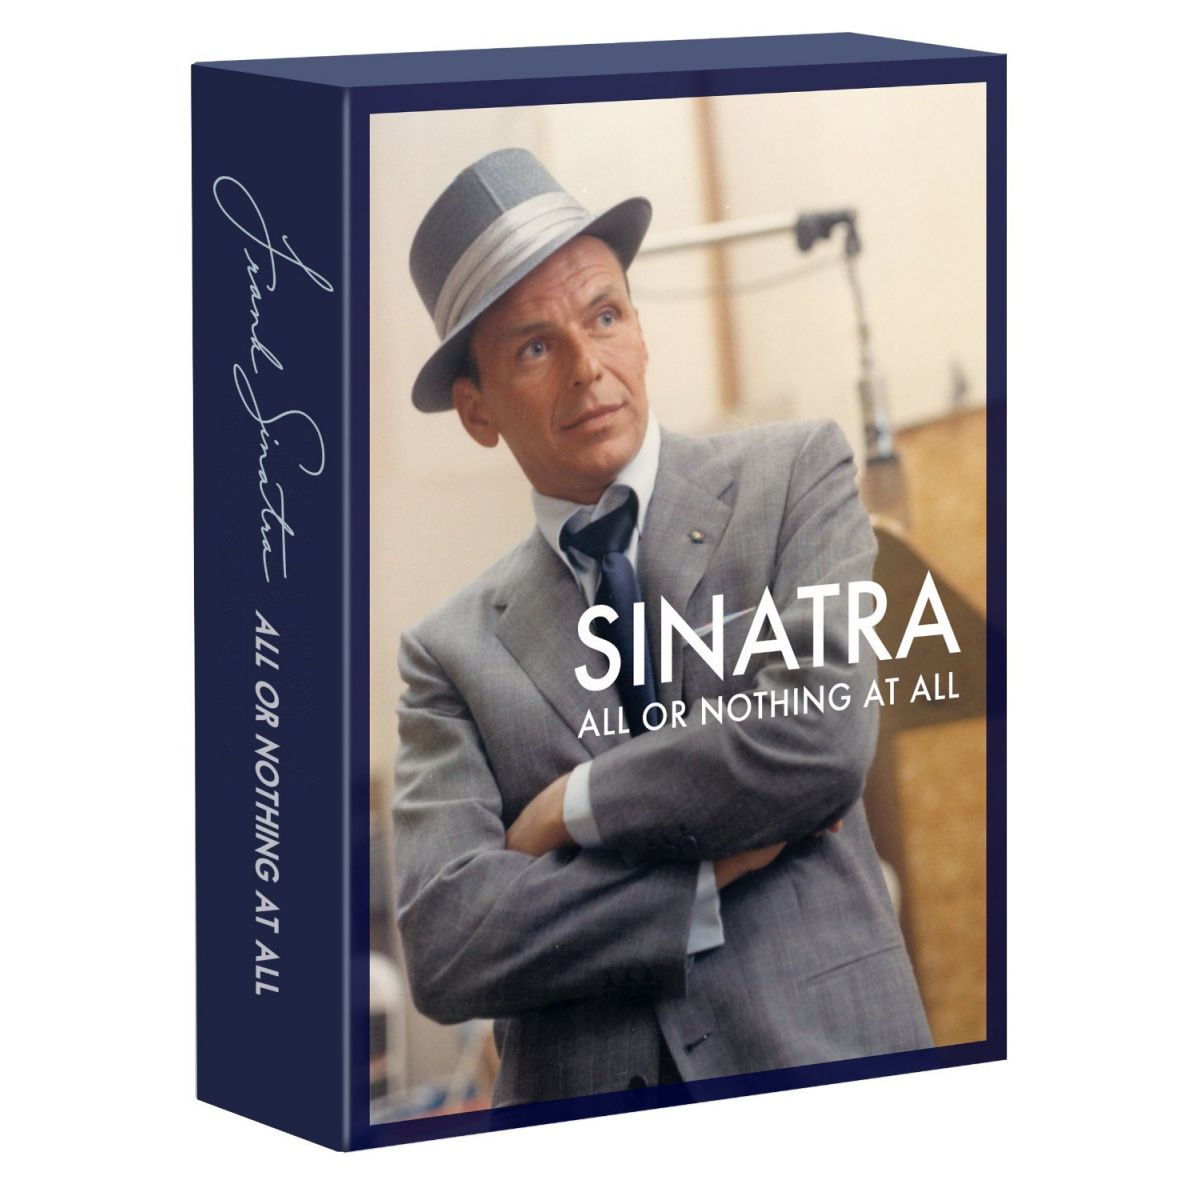 Frank Sinatra - All or Nothing at All -  Dlx Edition Cd+Dvd  - Billbox Records